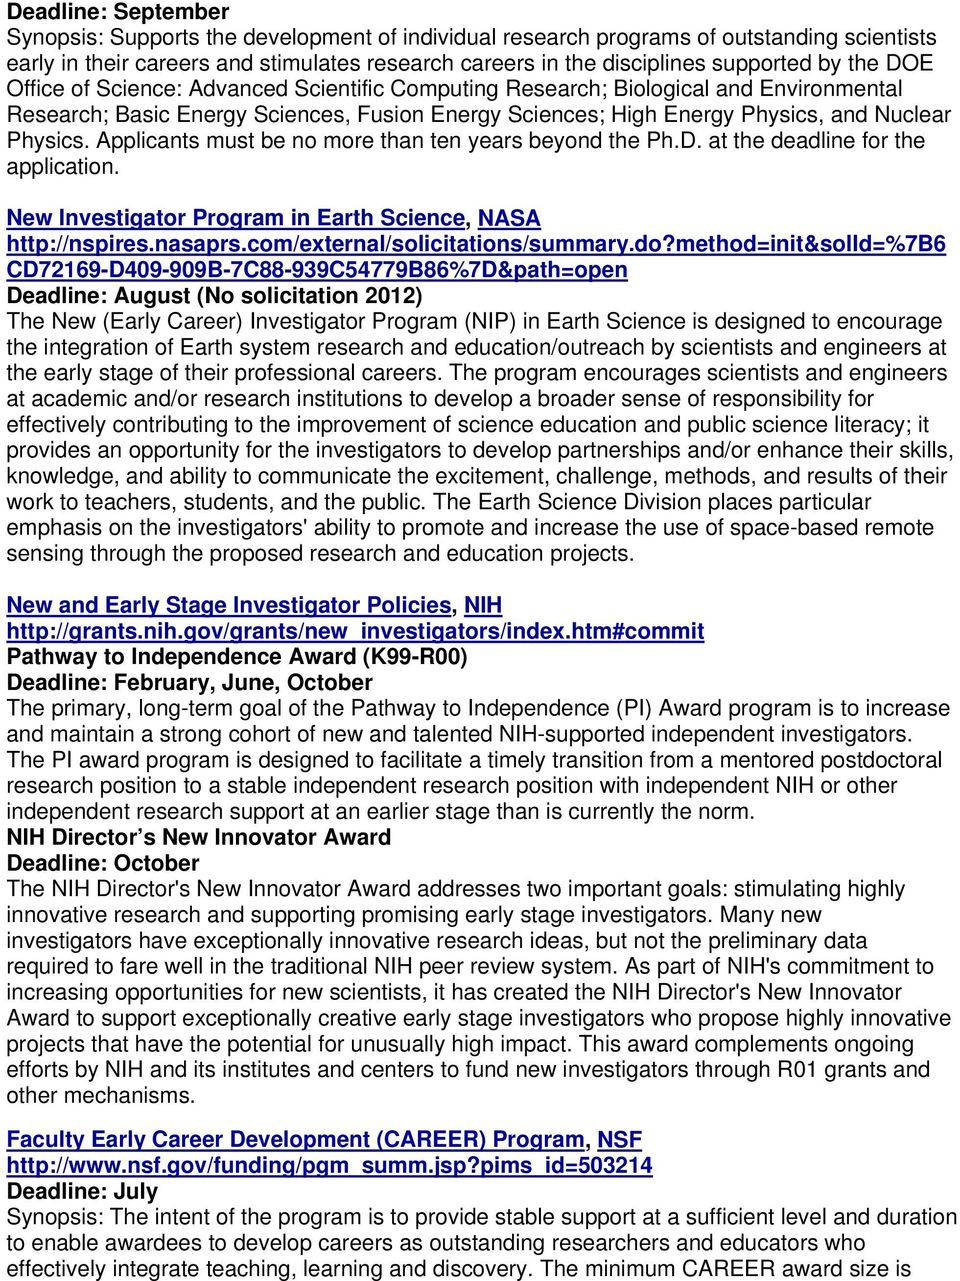 Applicants must be no more than ten years beyond the Ph.D. at the deadline for the application. New Investigator Program in Earth Science, NASA http://nspires.nasaprs.